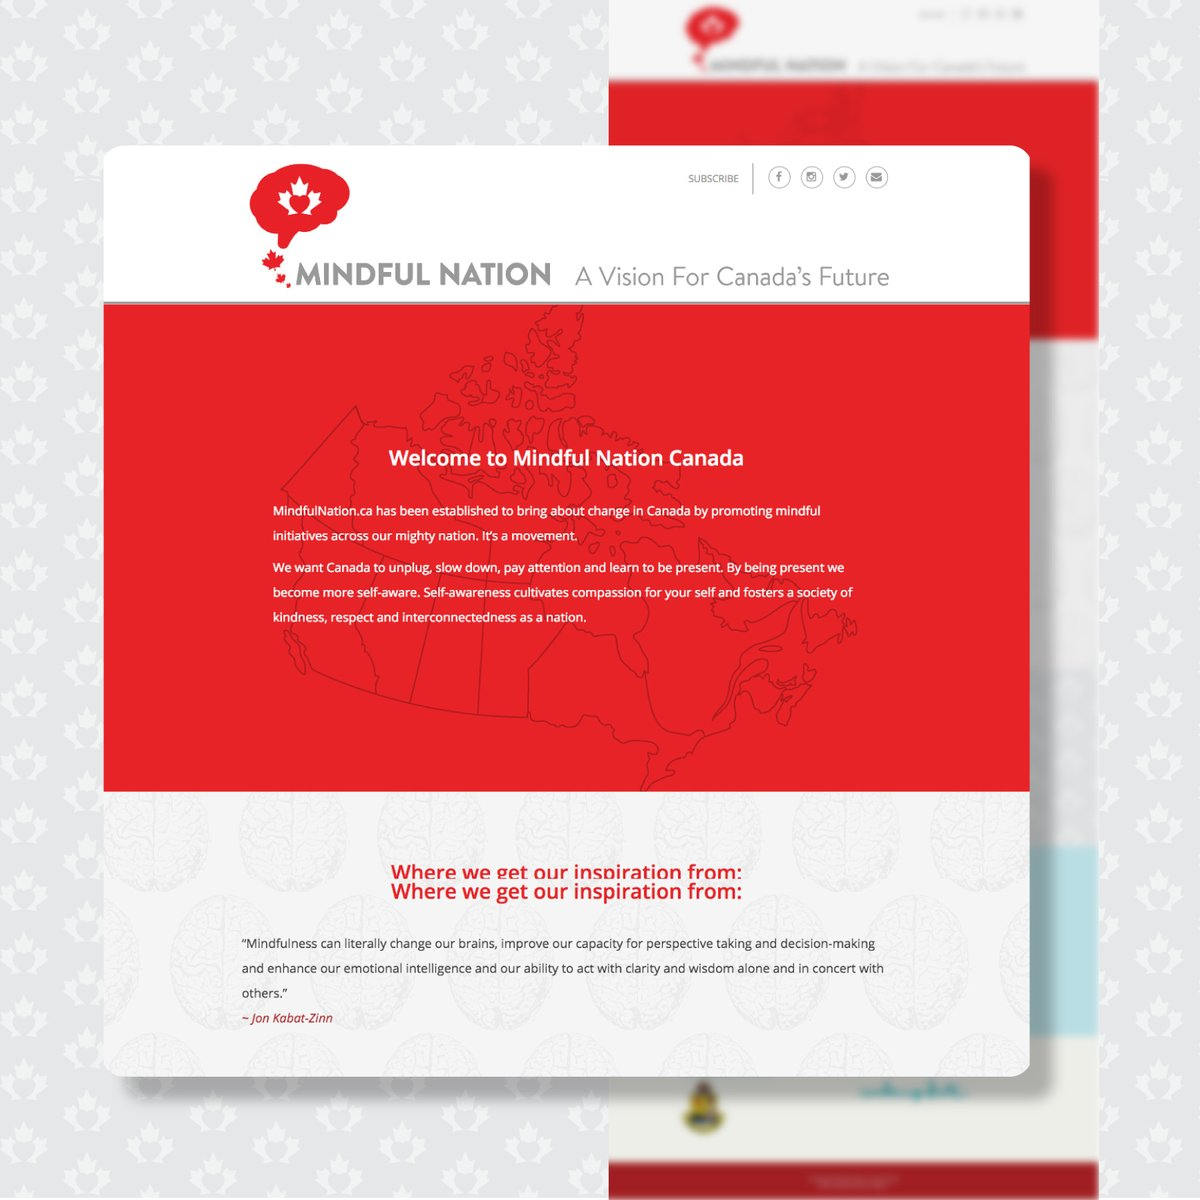 This is the #WebsiteDesign for Mindful Nation. An organization established to promote mindfulness across Canada. They want Canada to unplug, slow down, pay attention and learn to be present.  https:// bit.ly/2RqfxKY     #WebsiteDesign #WebsiteDesigns #WebDesign #WebDevelopment<br>http://pic.twitter.com/5GpDM3G2jM